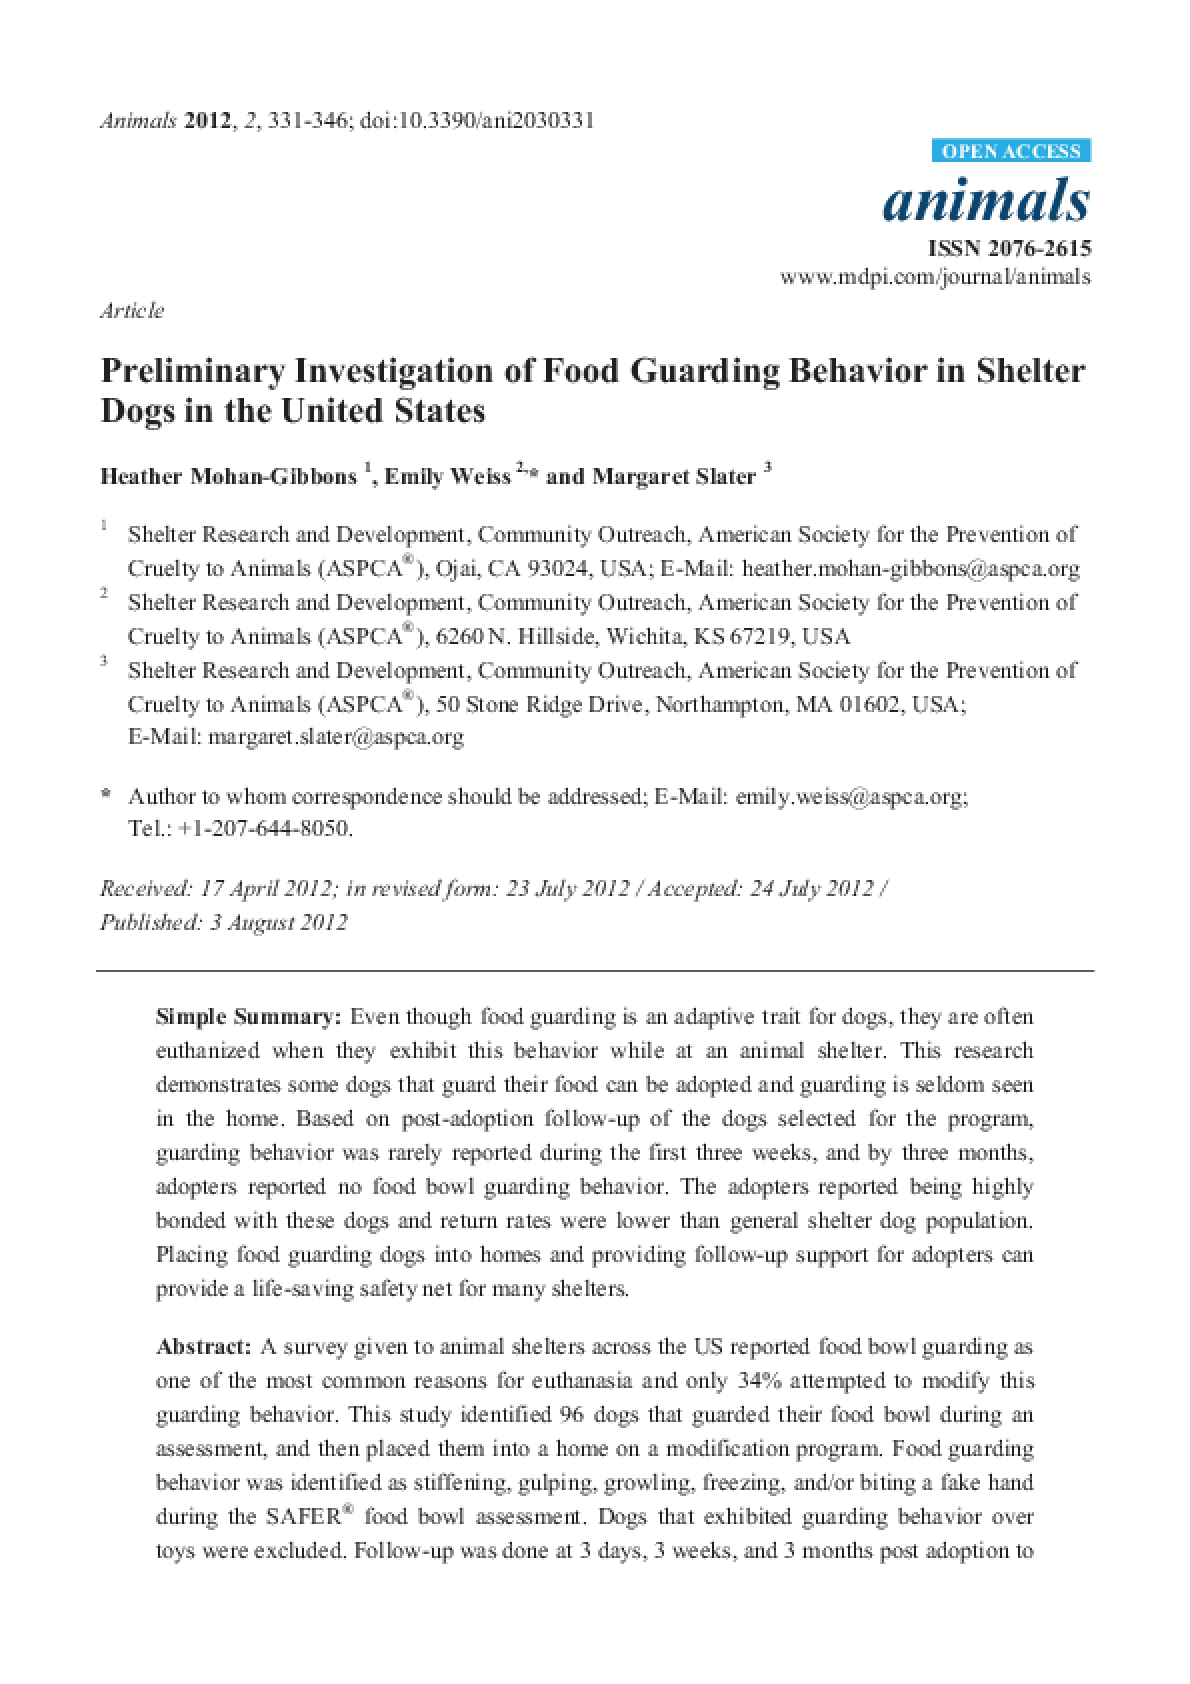 Preliminary Investigation of Food Guarding Behavior in Shelter Dogs in the United States